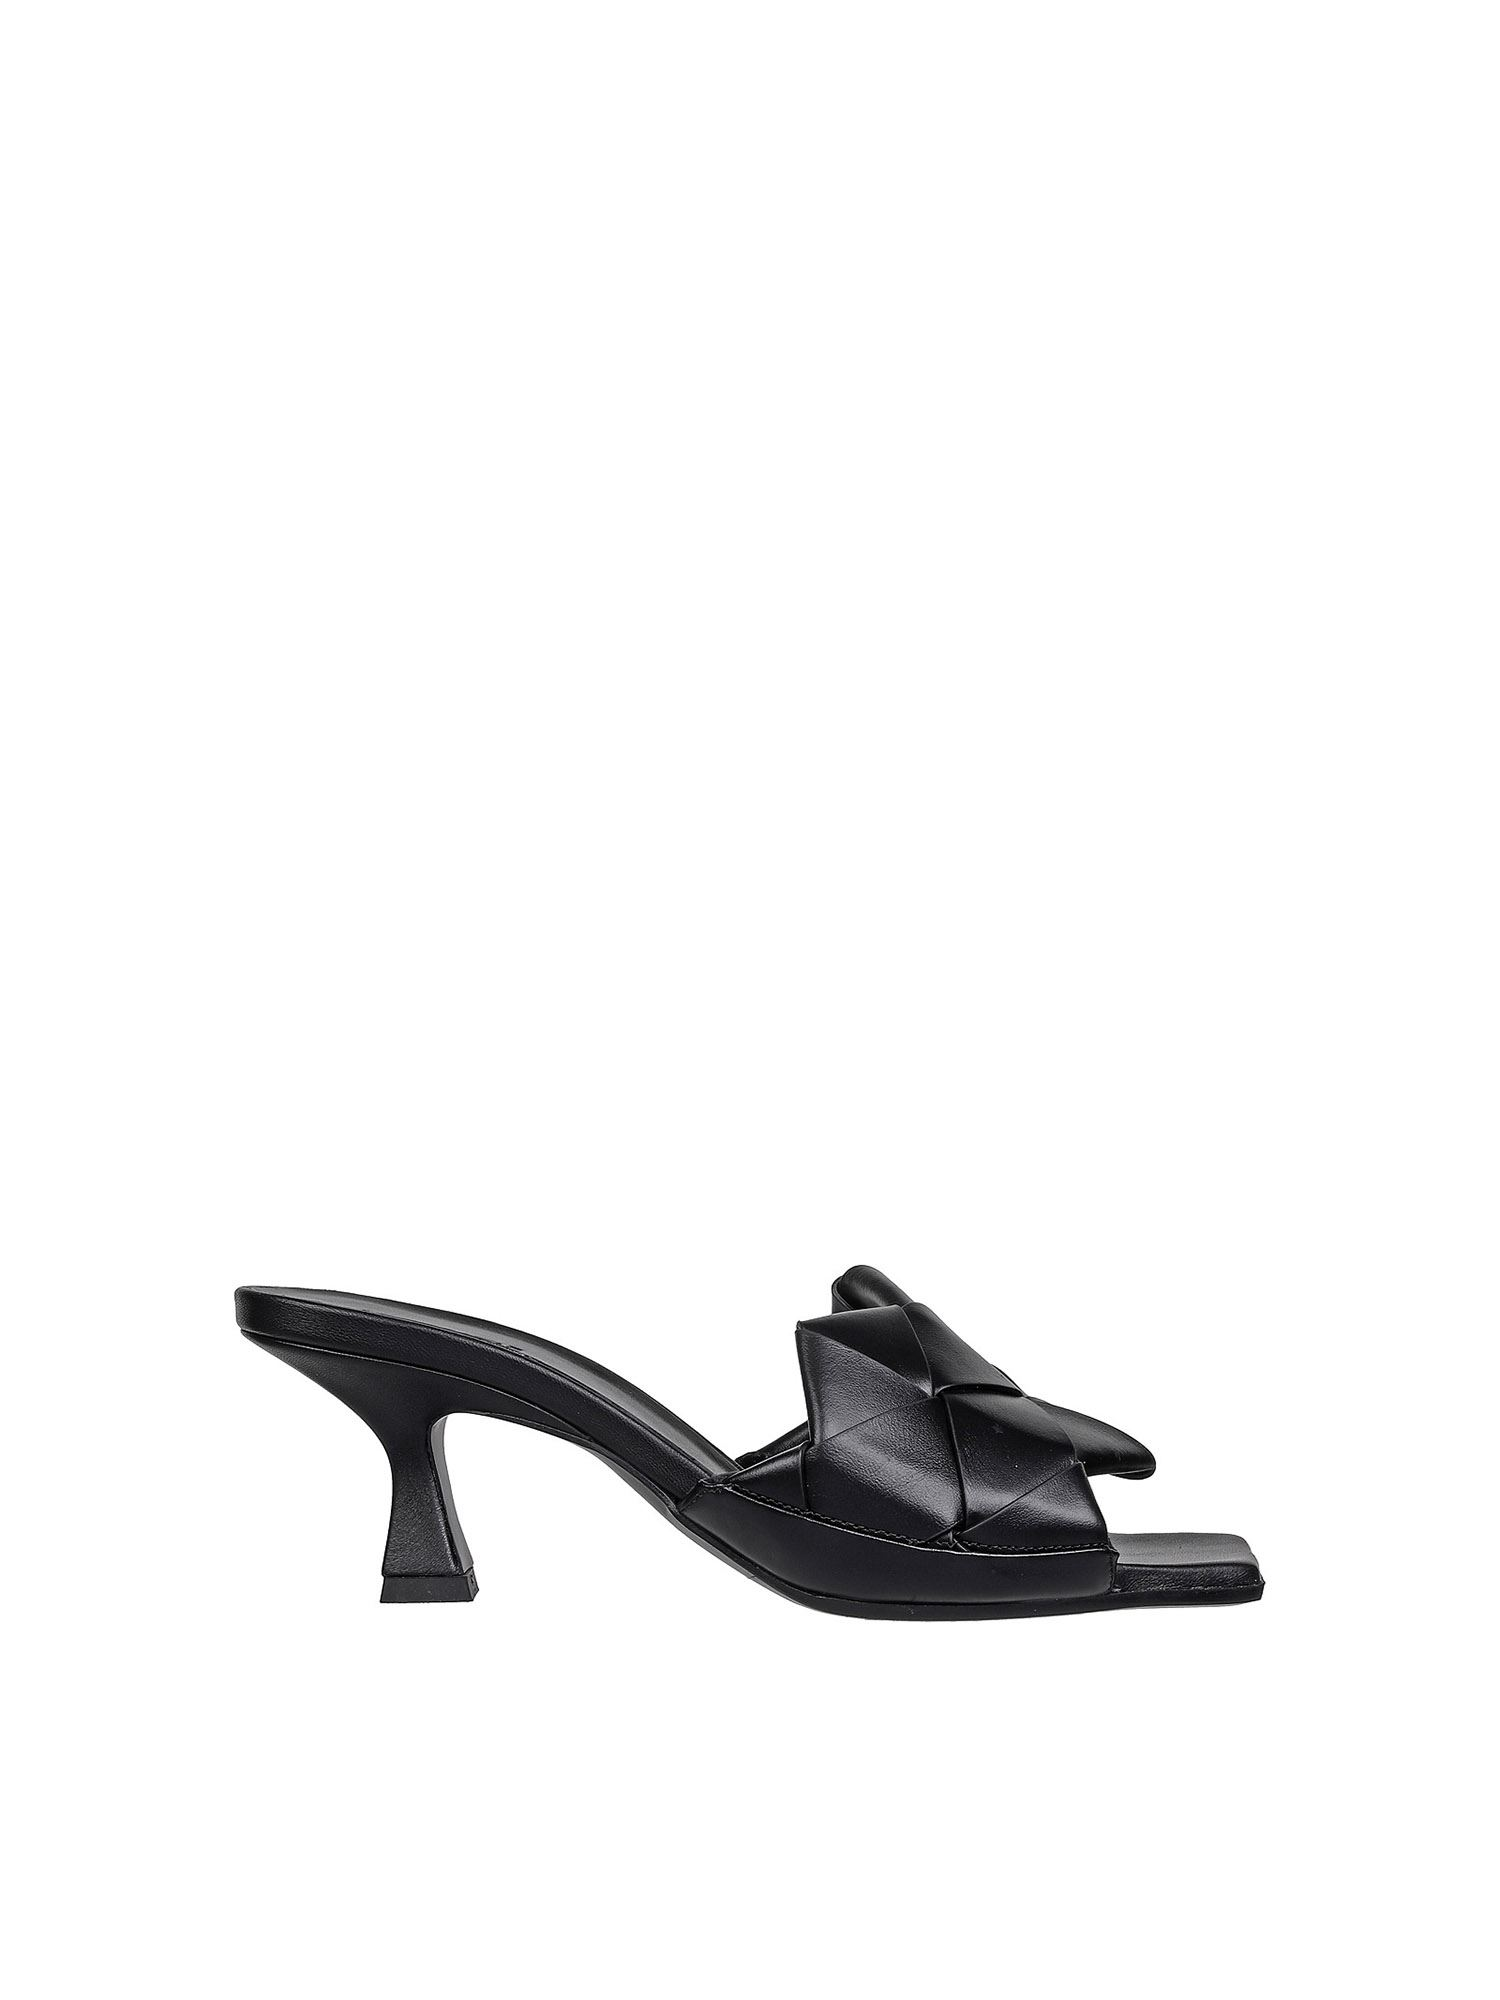 Vic Matie Flats MAXI WOVEN BAND SANDALS IN BLACK